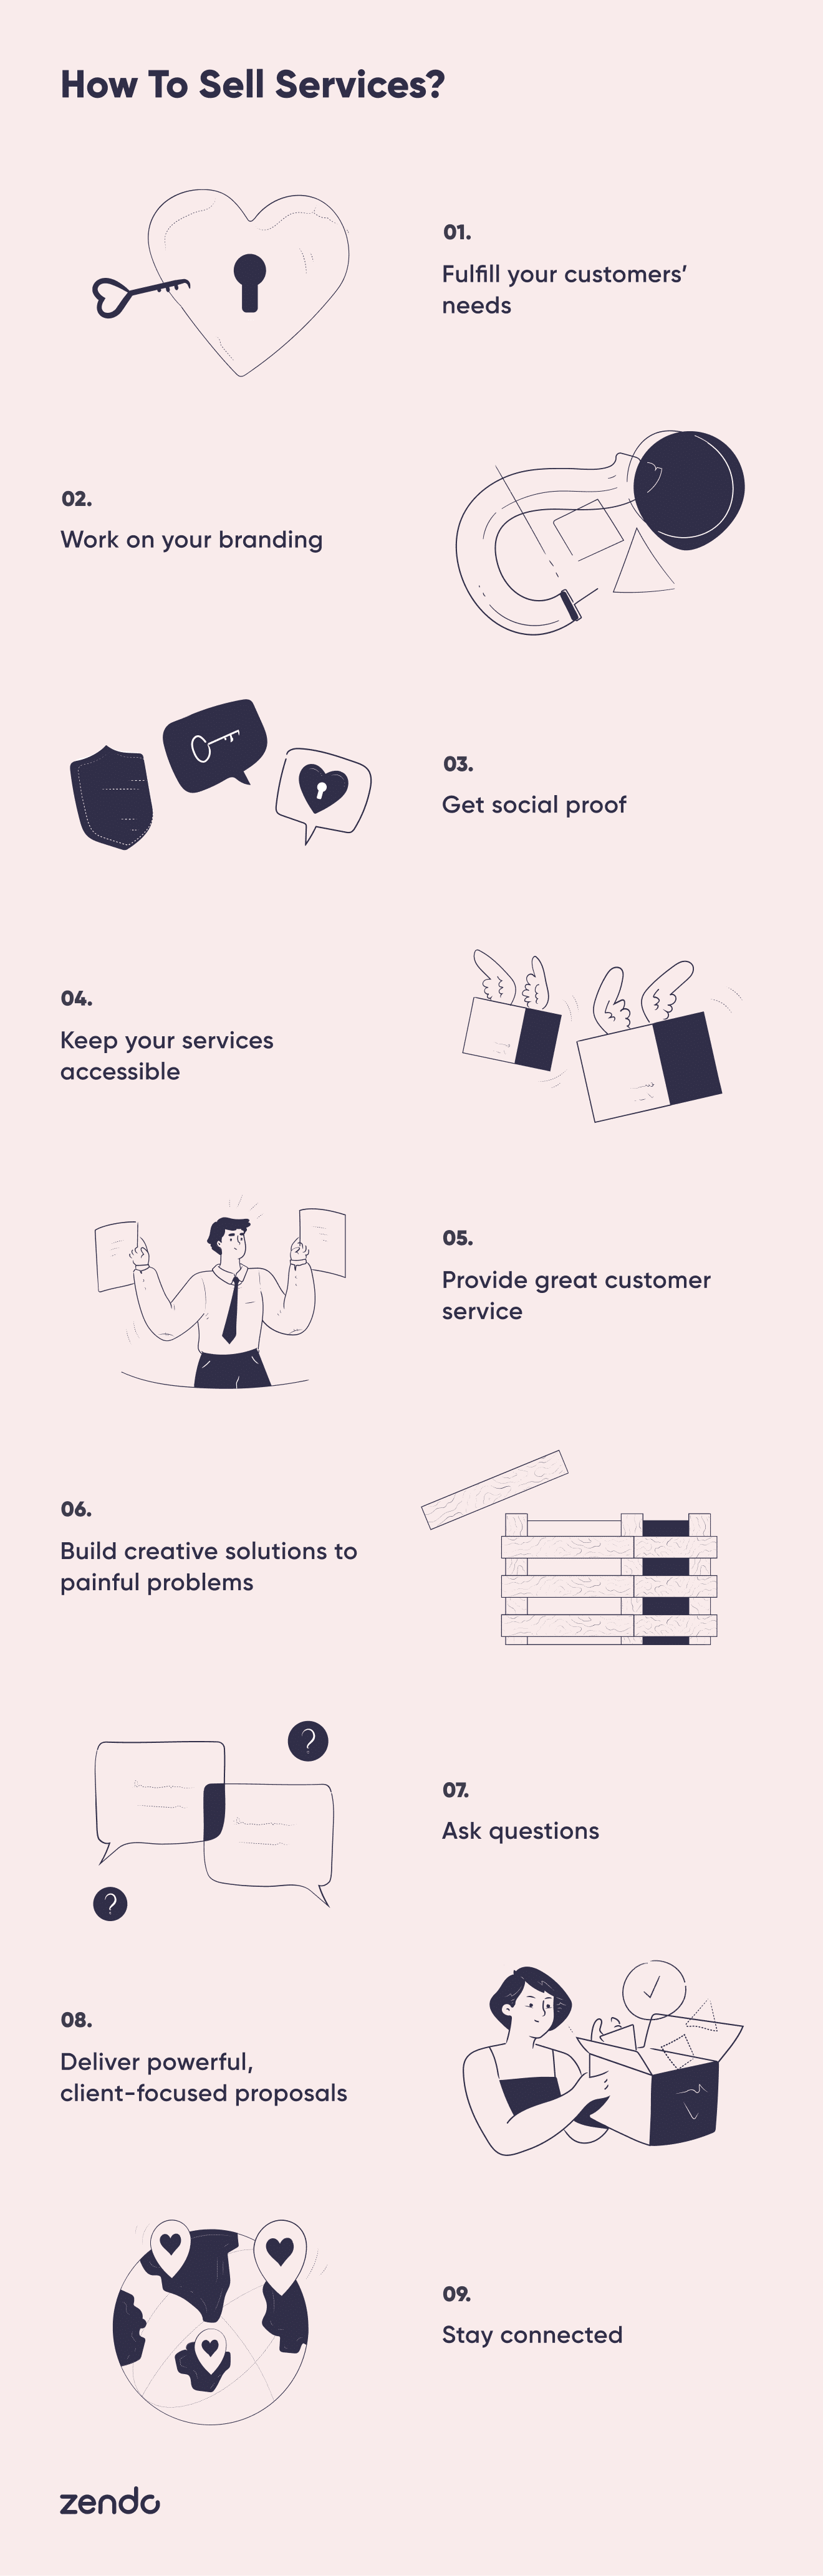 HowToSellServices infographic1